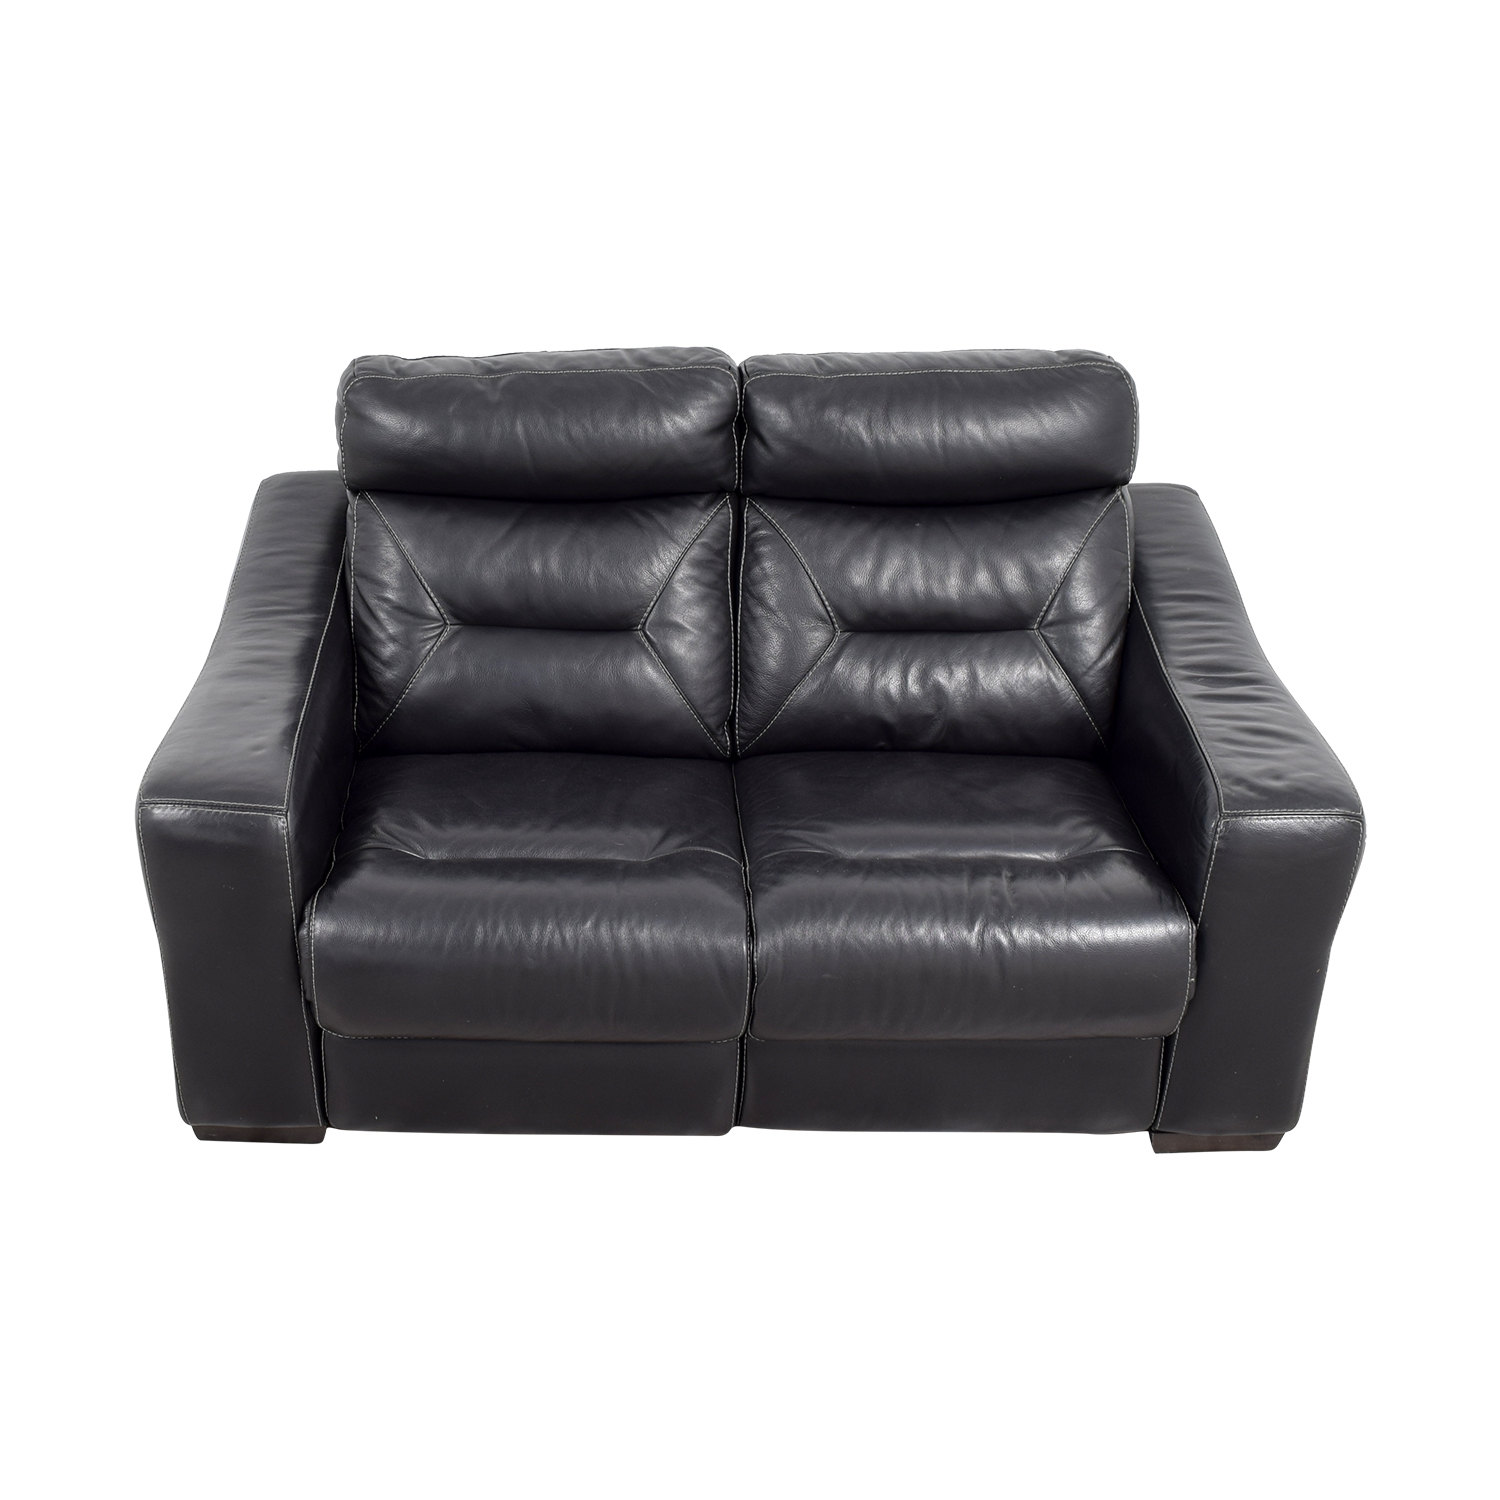 buy Macy's Black Leather Recliner Love Seat Macy's Loveseats